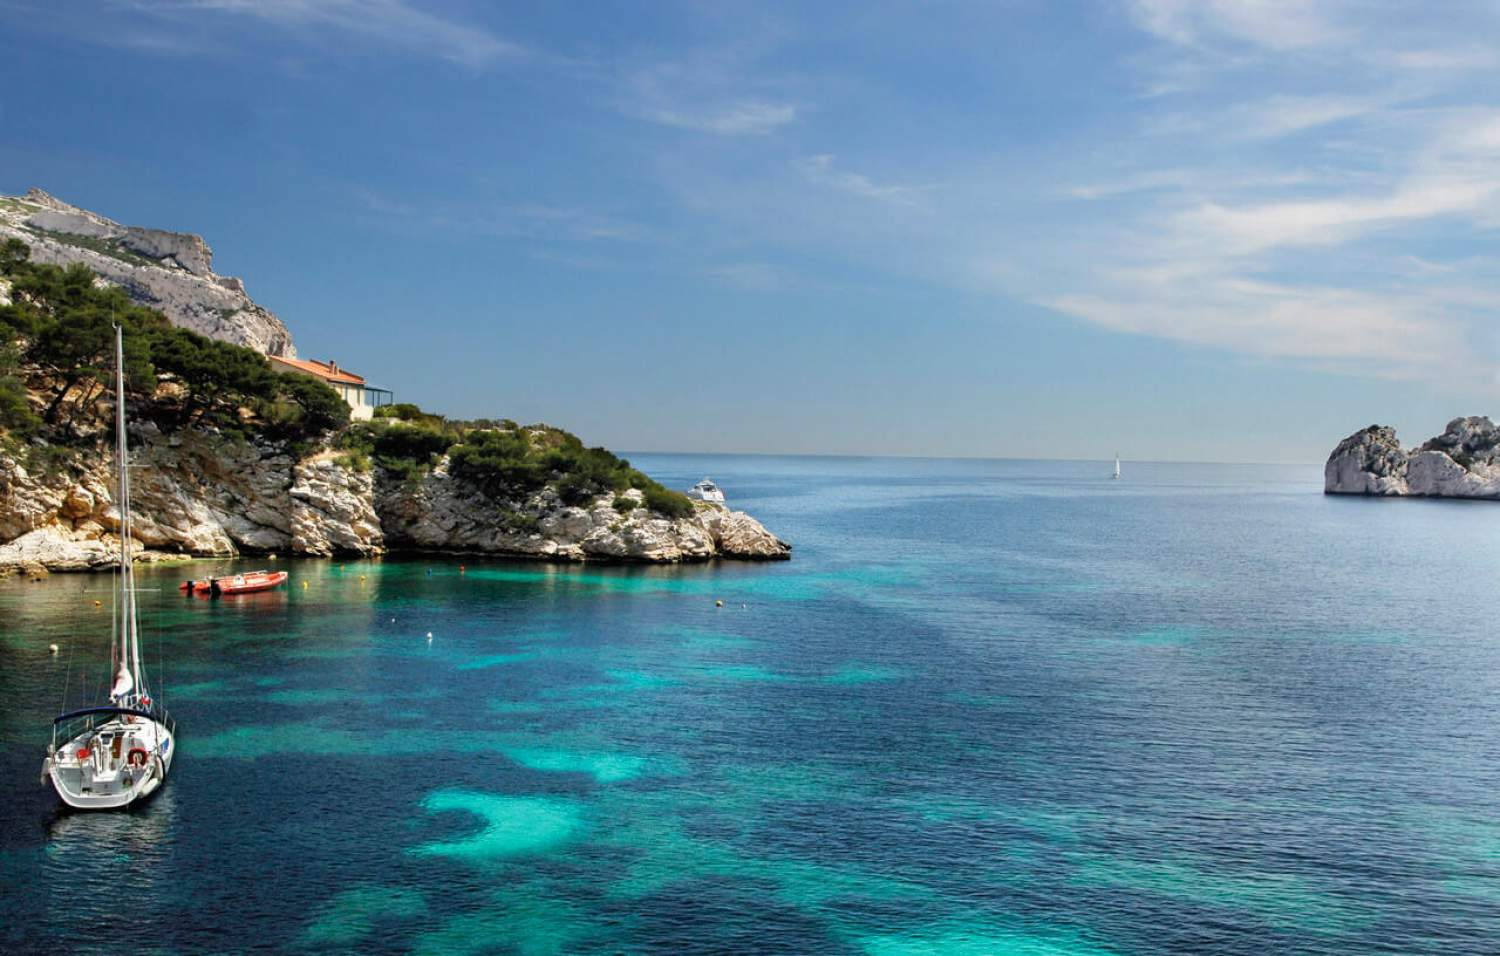 National park of Calanques in Provence, France